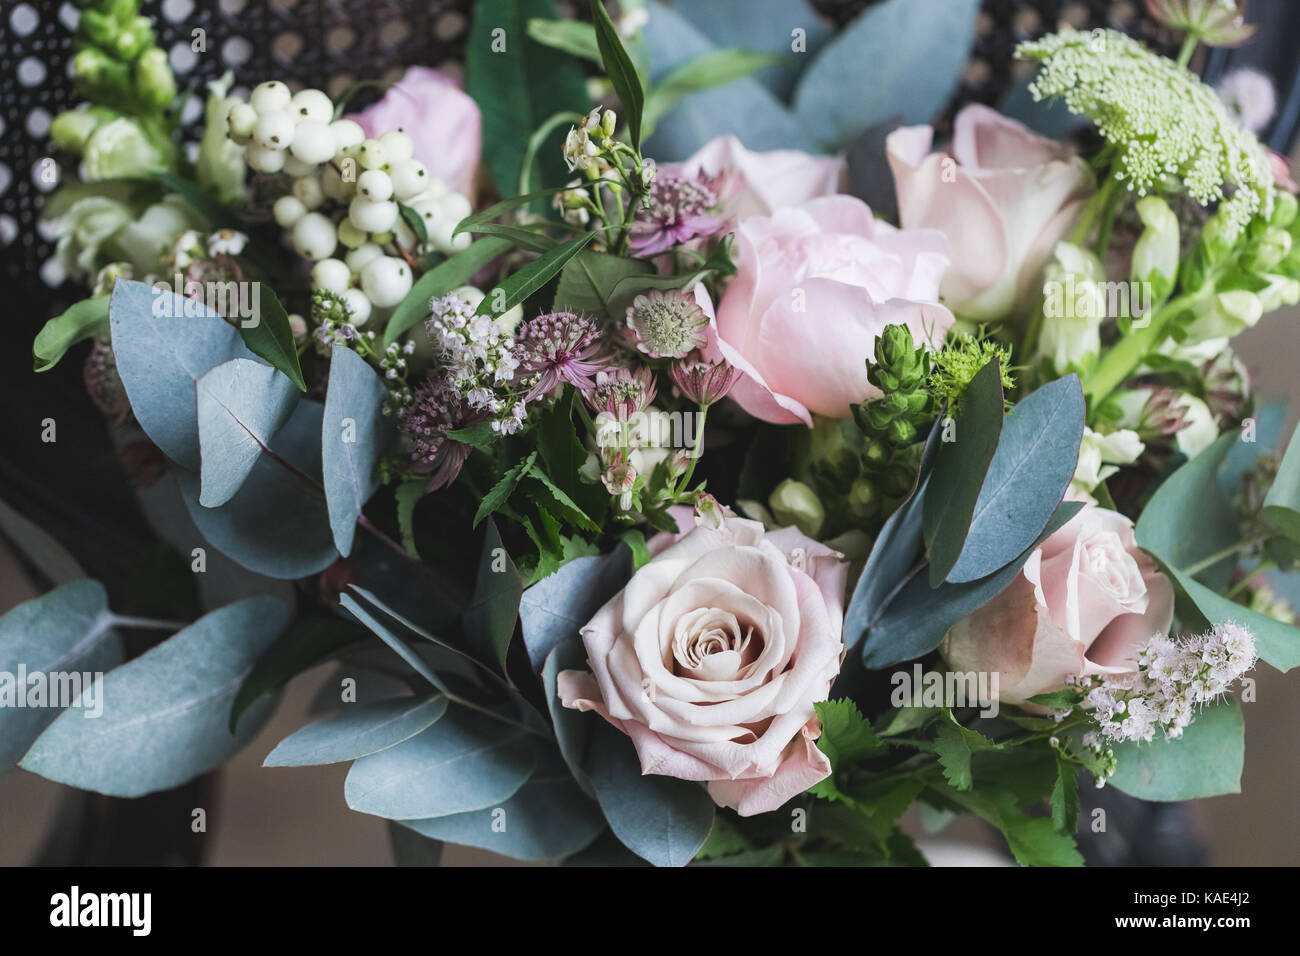 Beautiful wedding bouquet with roses and peonies closeup - Stock Image